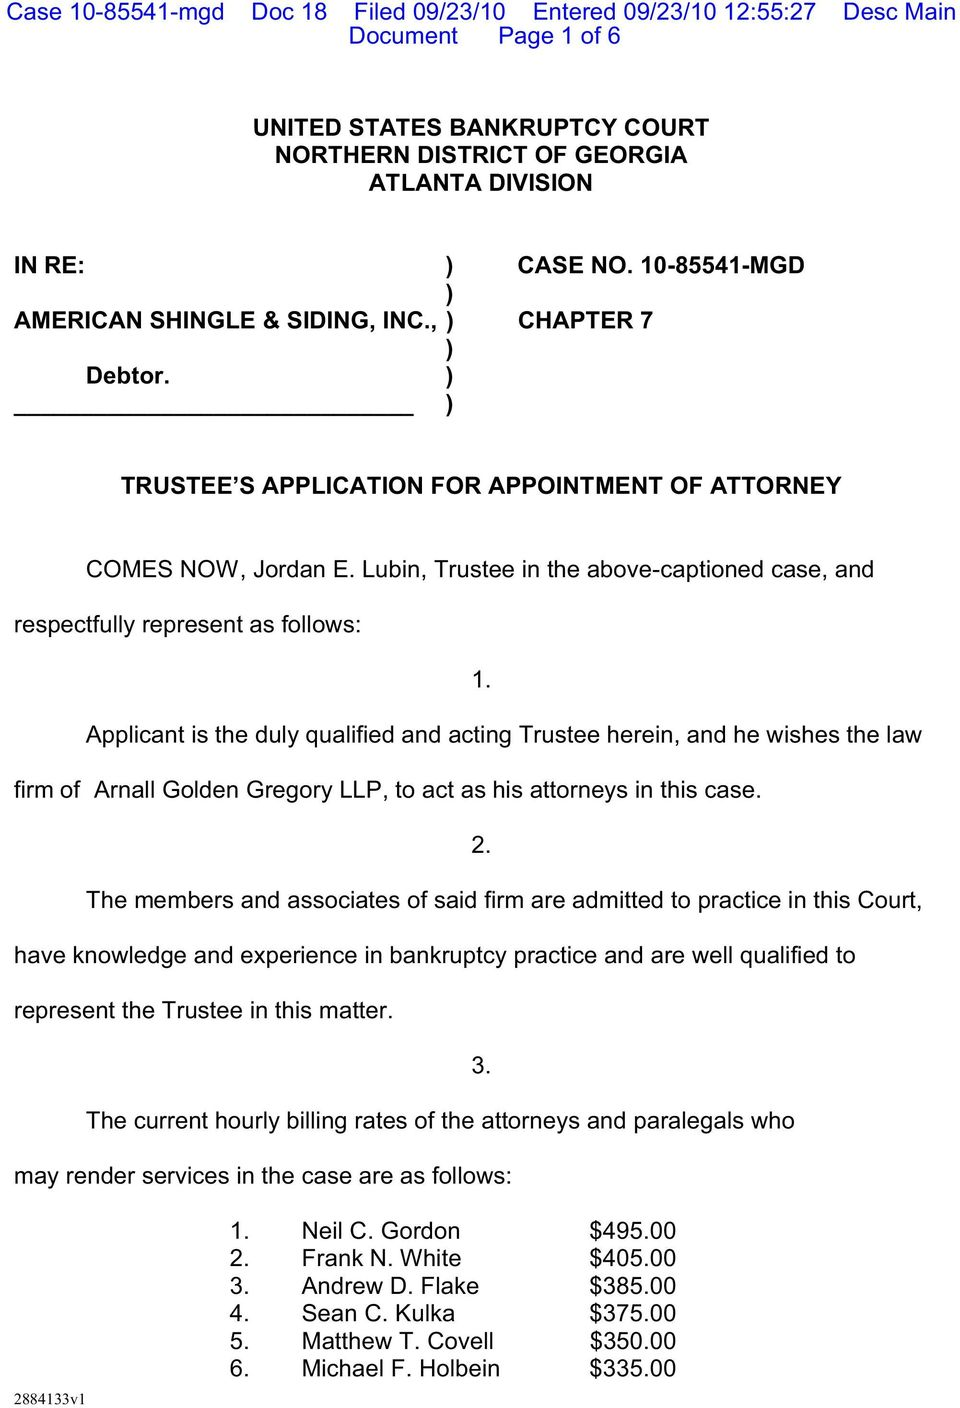 Applicant is the duly qualified and acting Trustee herein, and he wishes the law firm of Arnall Golden Gregory LLP, to act as his attorneys in this case. 2.